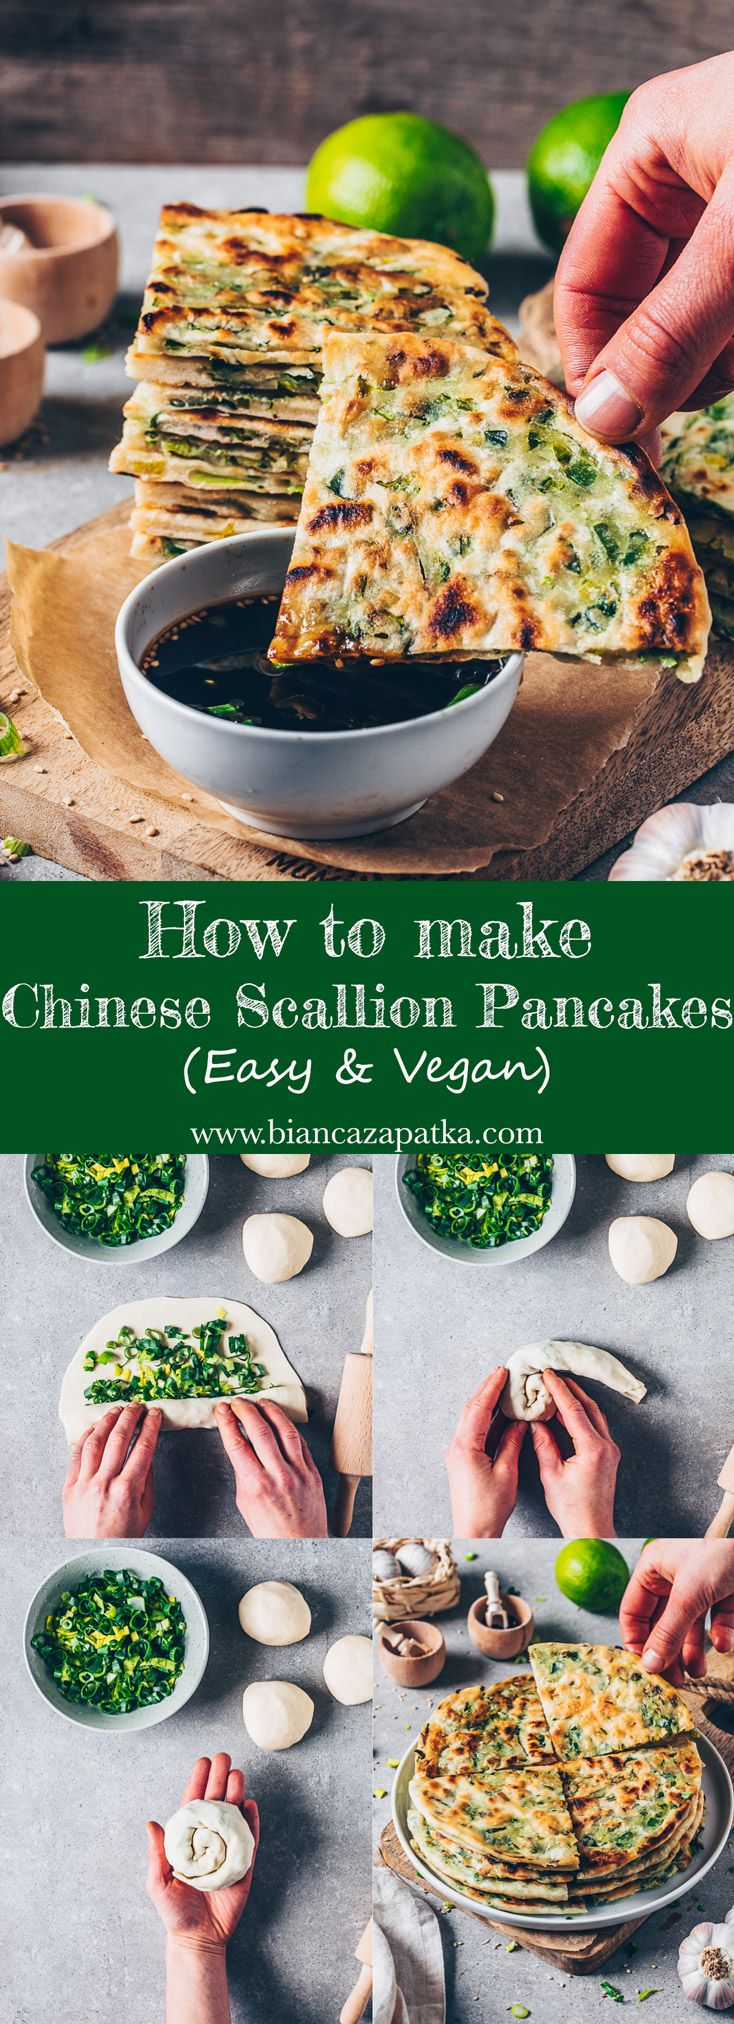 Scallion Pancakes (Vegan Recipe) - Bianca Zapatka | Recipes